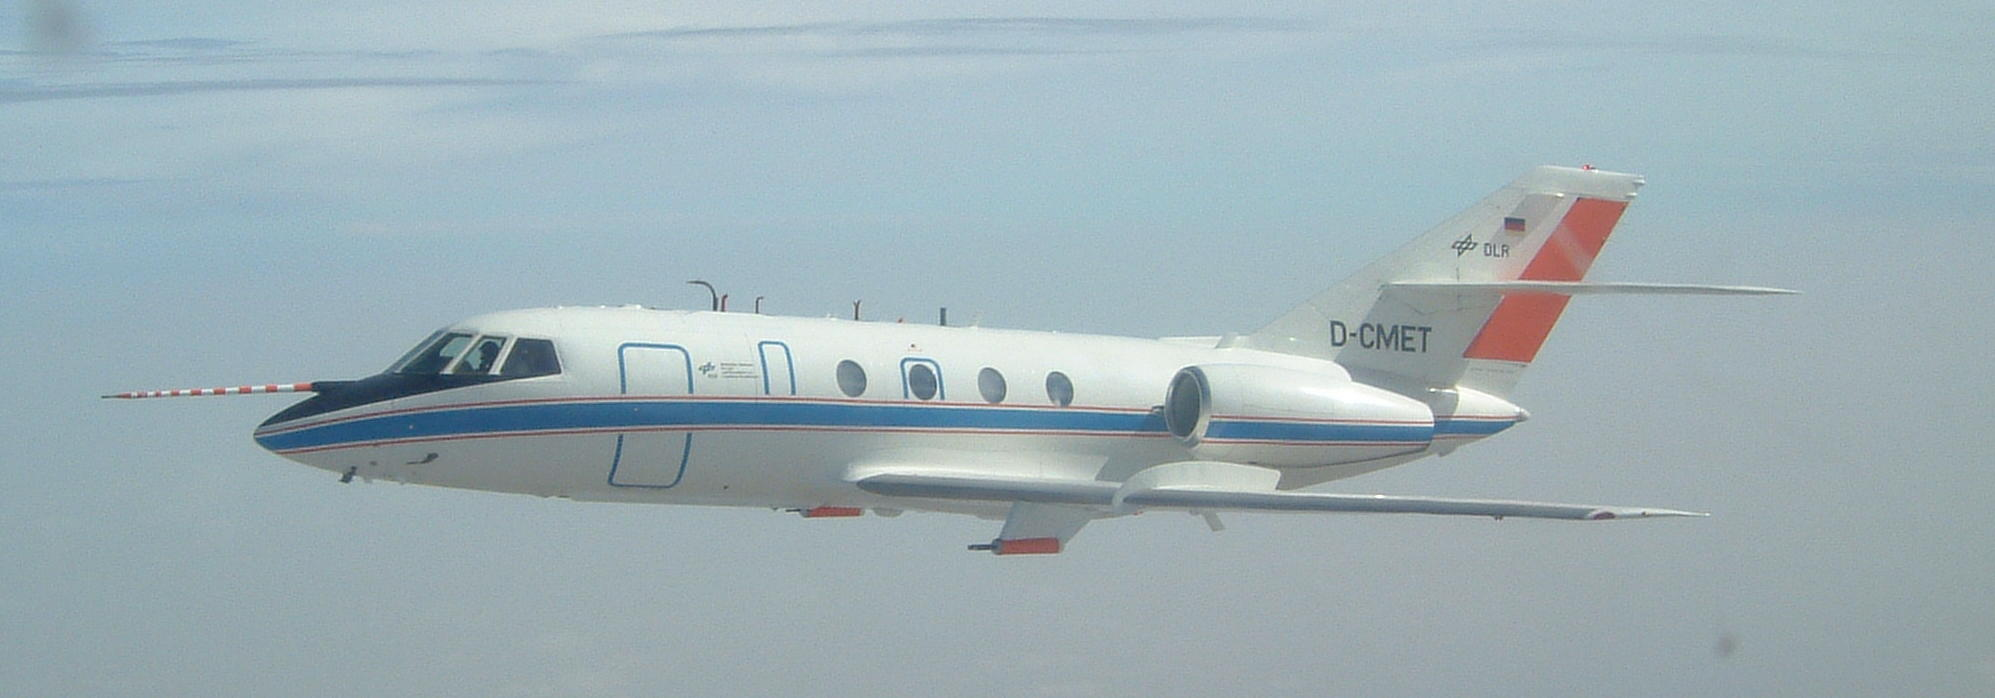 DLR Falcon aircraft as seen from the FAAM aircraft during a previous experiment (Photo credit: John Methven).